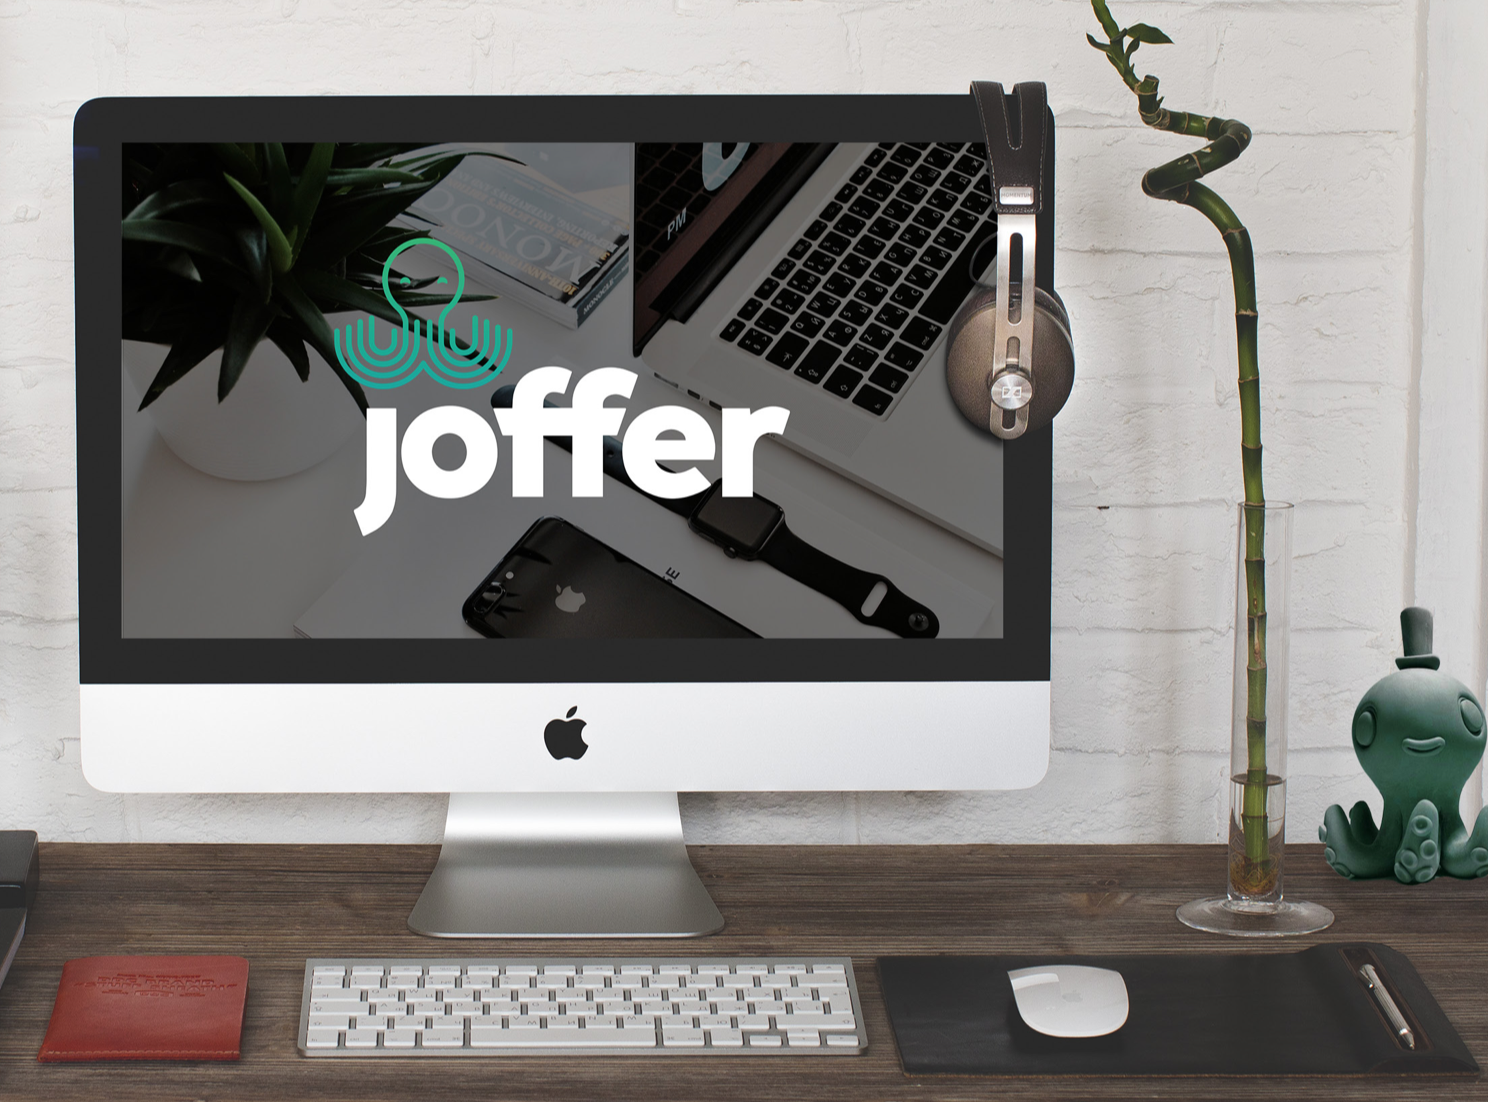 Joffer Brand Development